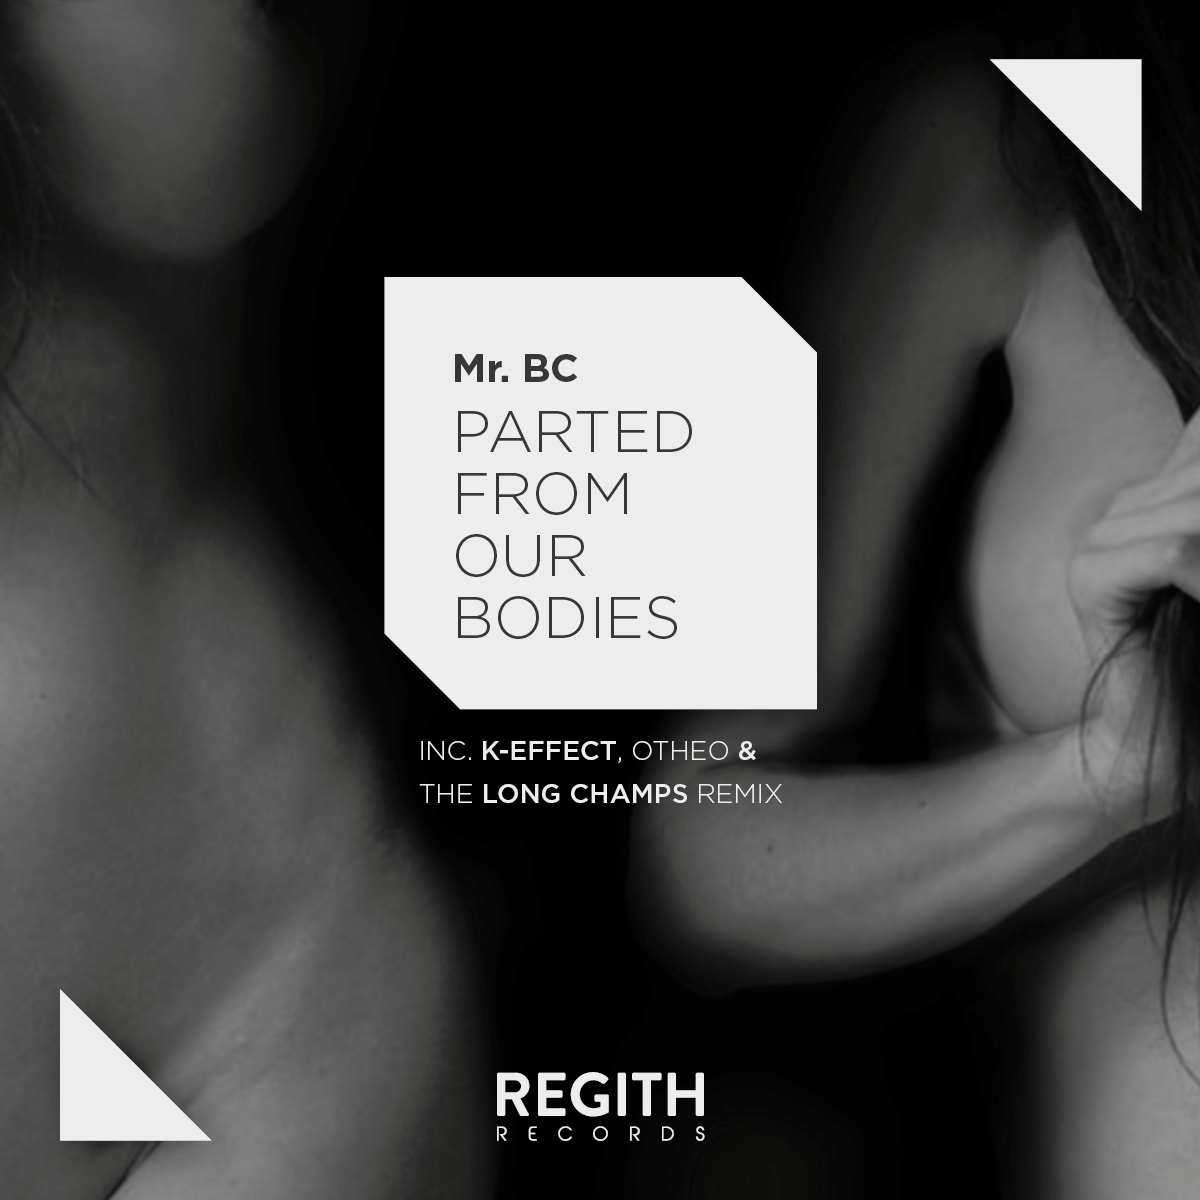 PREMIERE – Mr. BC – Parted From Our Bodies (The Long Champs Remix) (Regith Records)